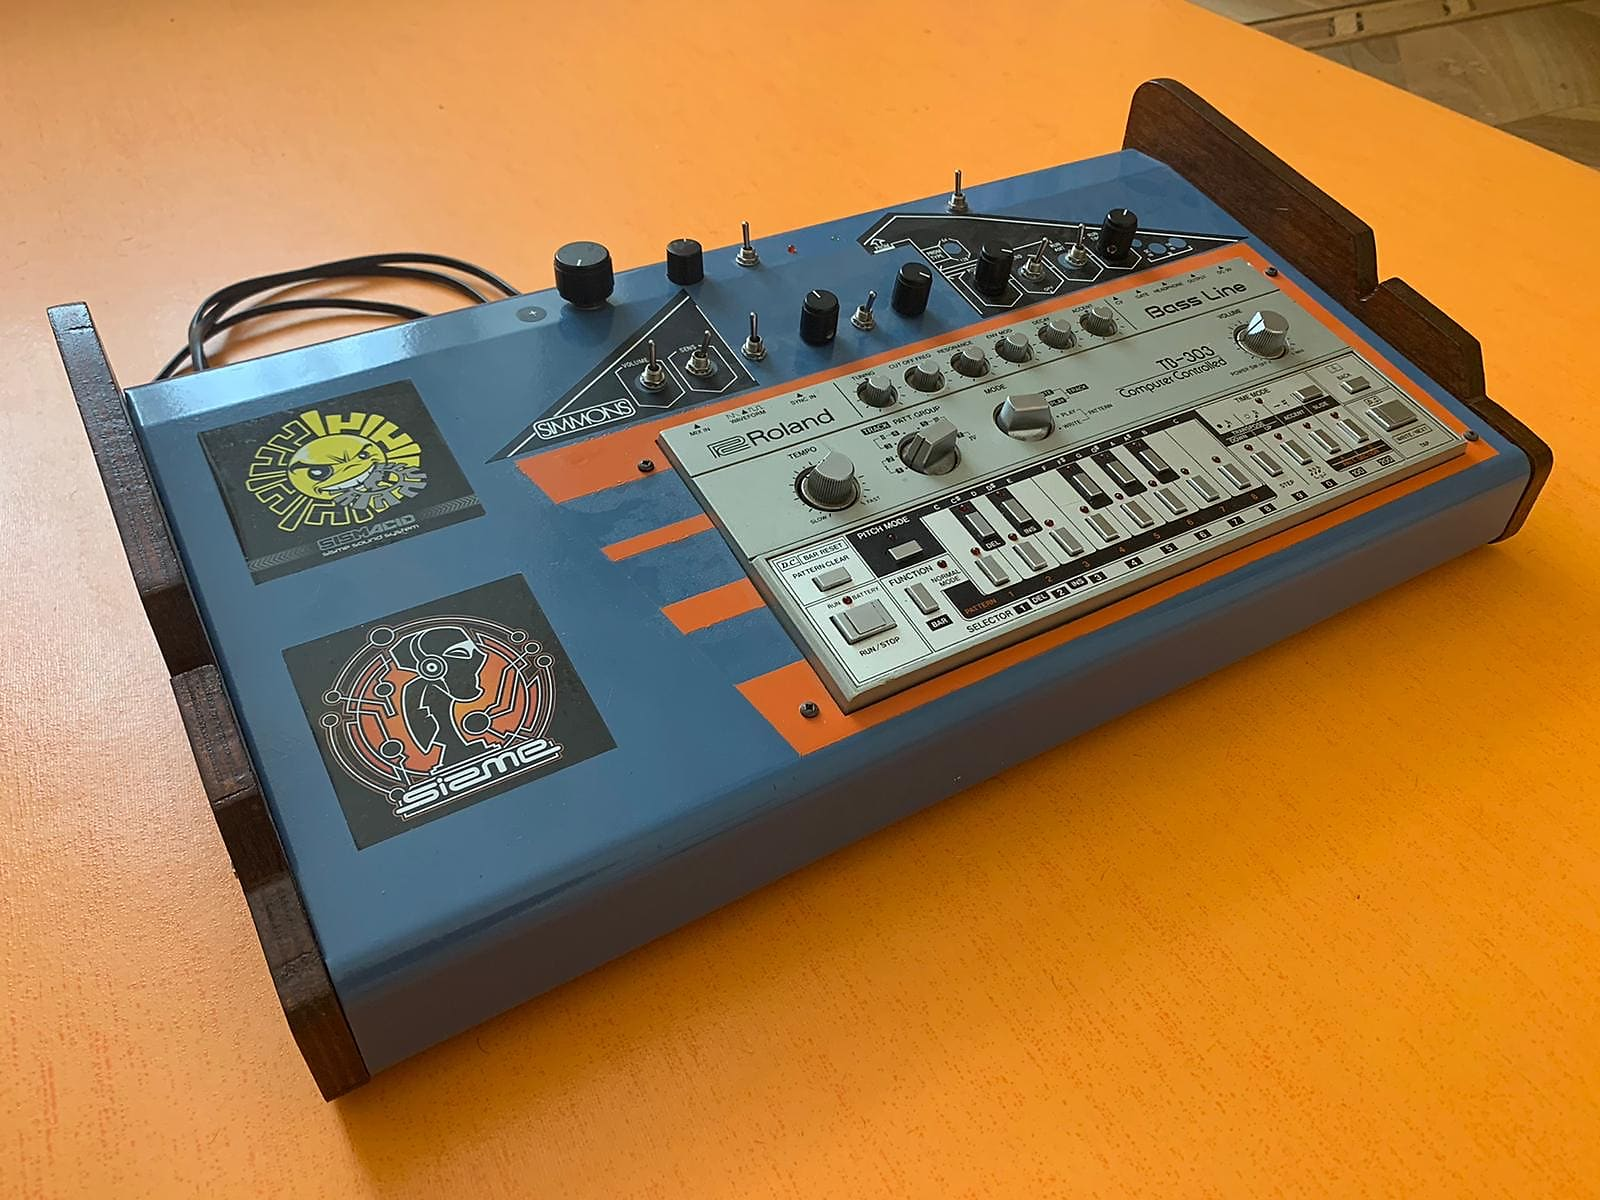 Roland TB-303 Bass Line Synthesizer Module super station ultra rare boosted